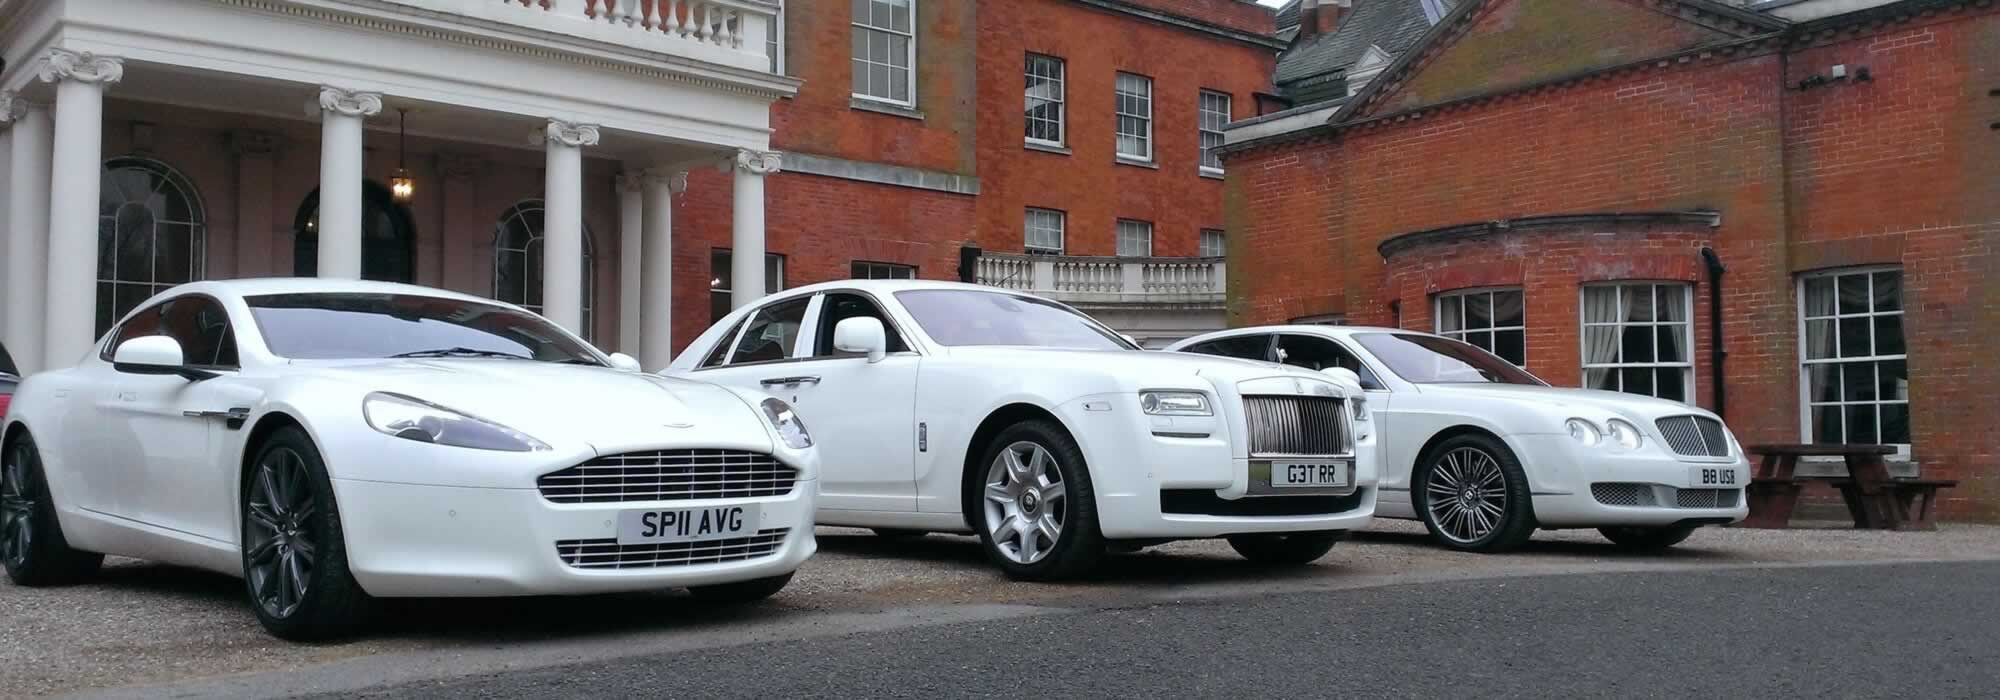 Luxury Car Hire South East London